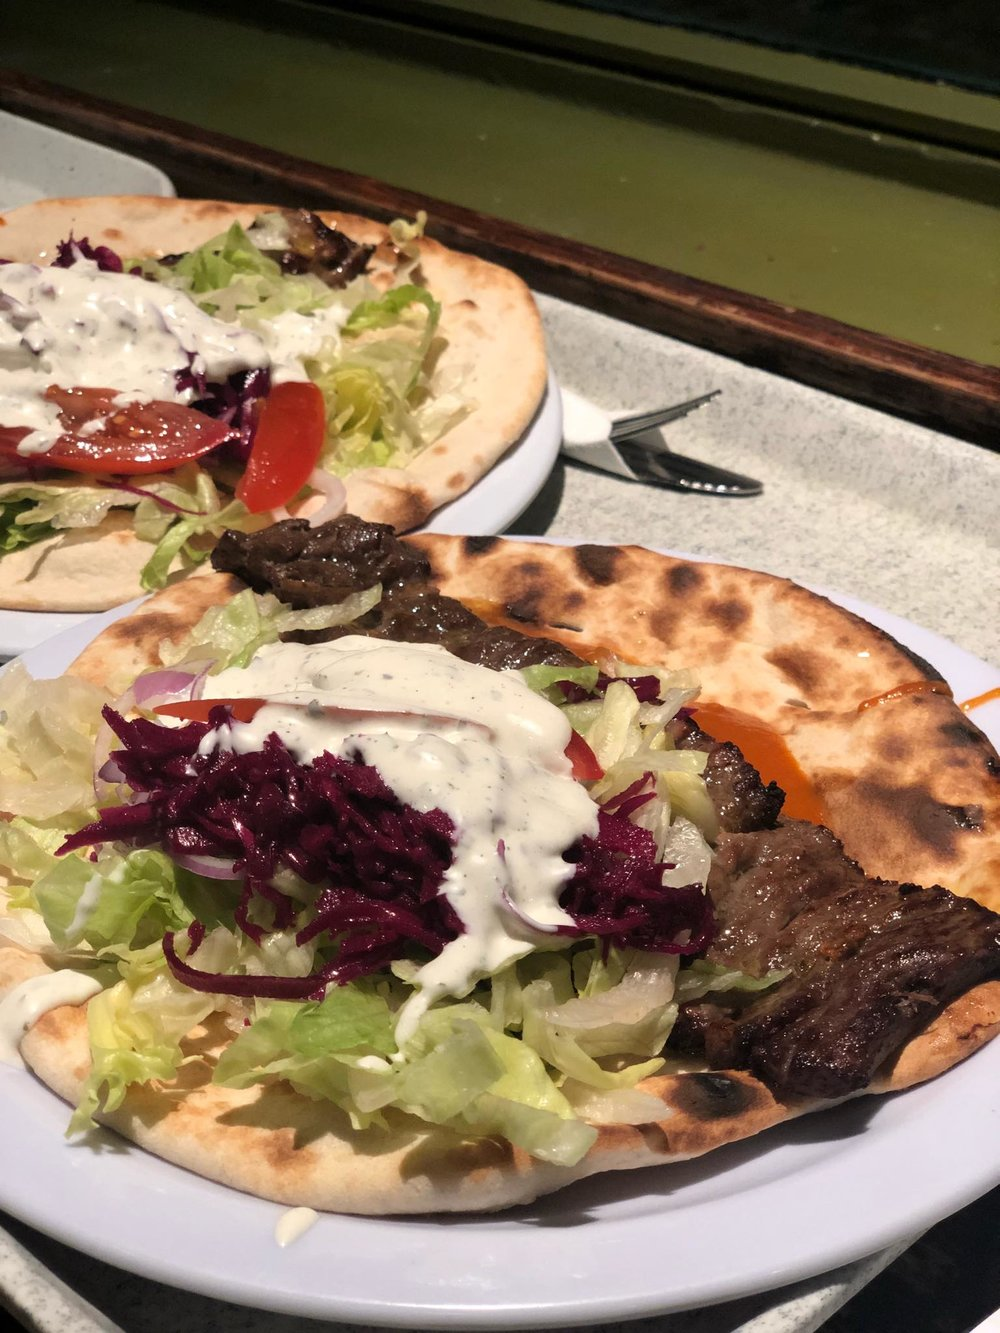 - Left, one of Zaytoon's specialty items, along with the grilled chicken kebabs: Barg - fillet of beef marinated with saffron and special spices.